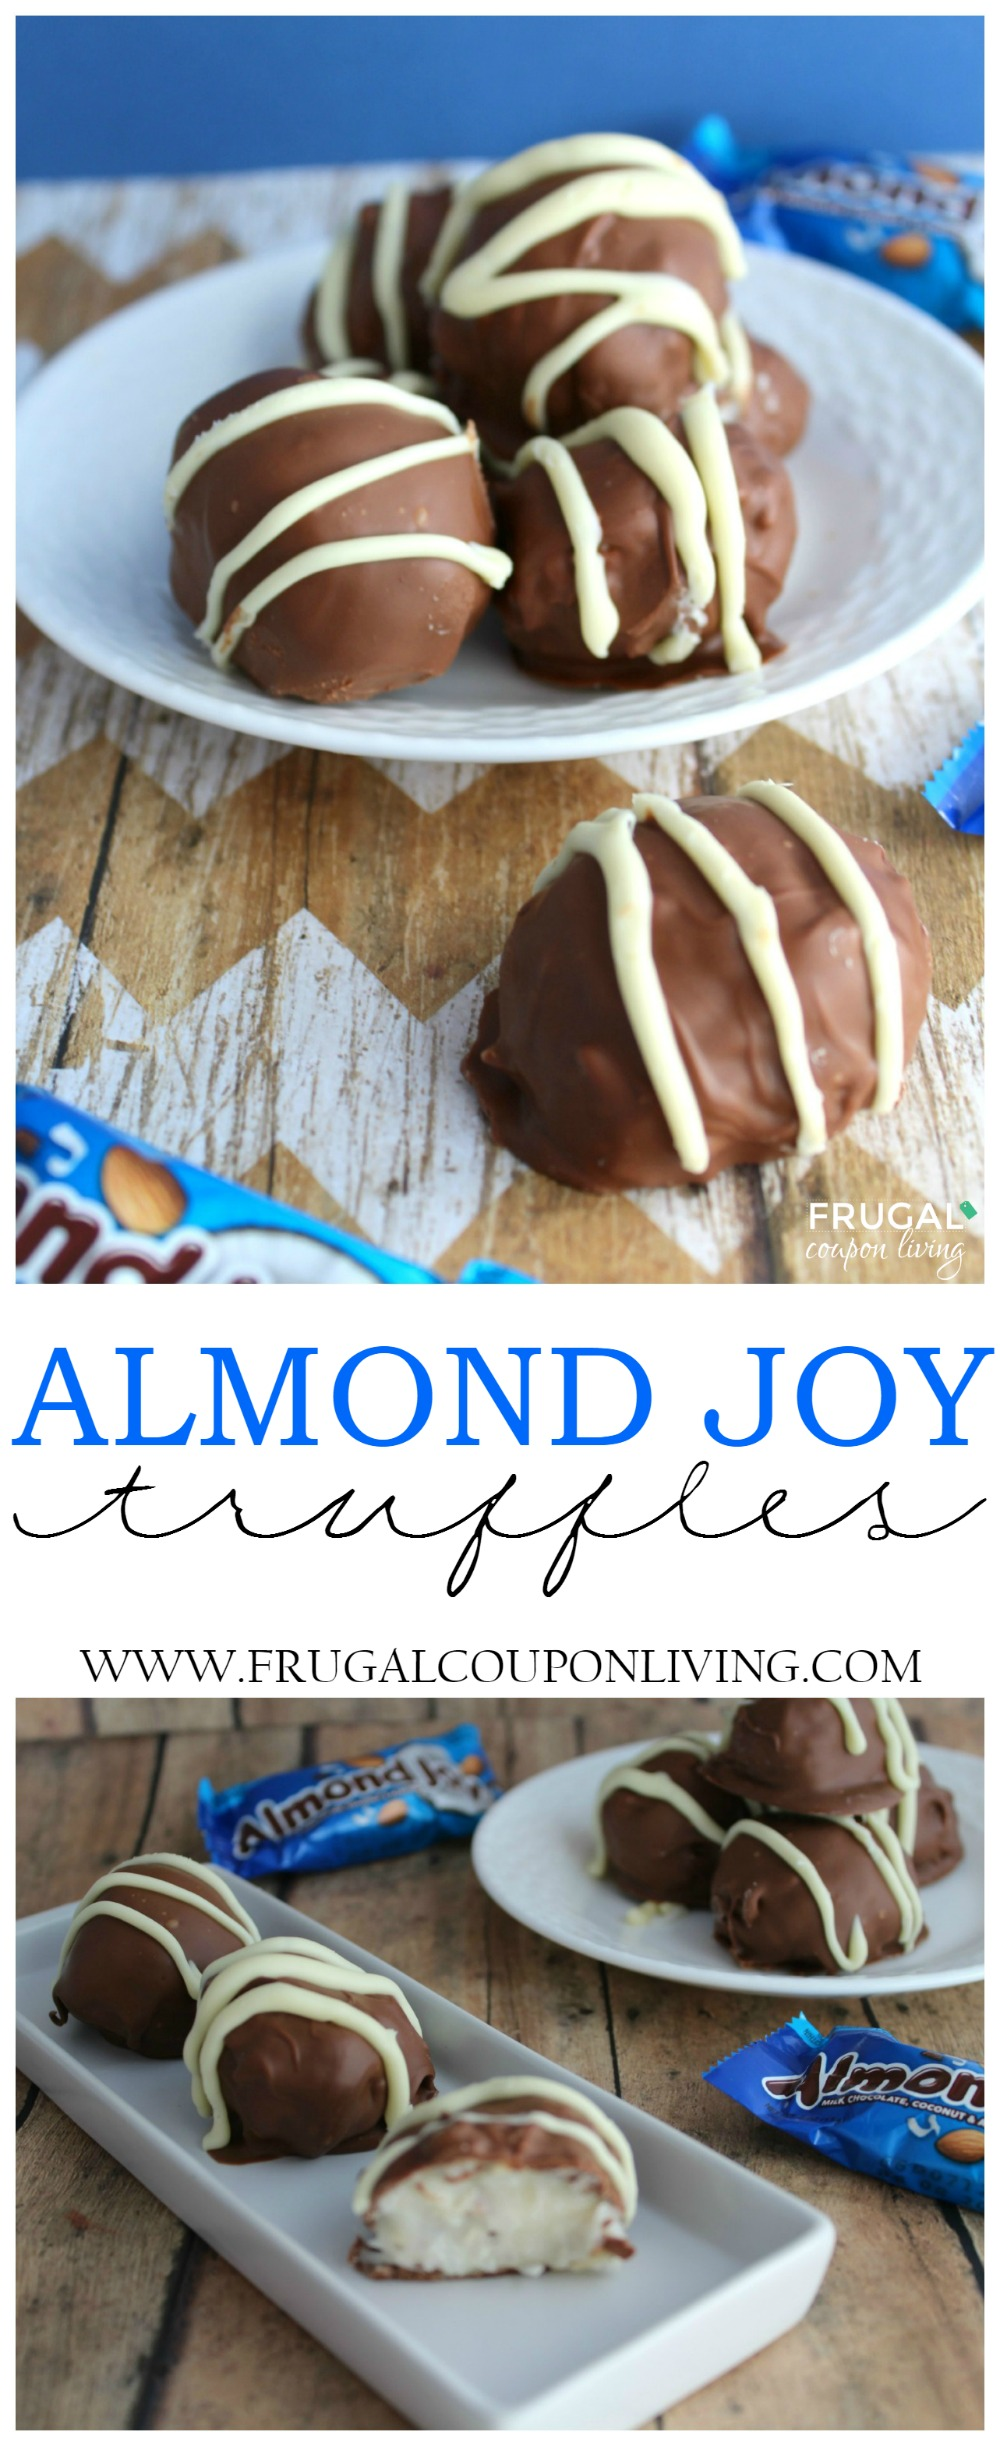 almond-joy-truffles-frugal-coupon-living